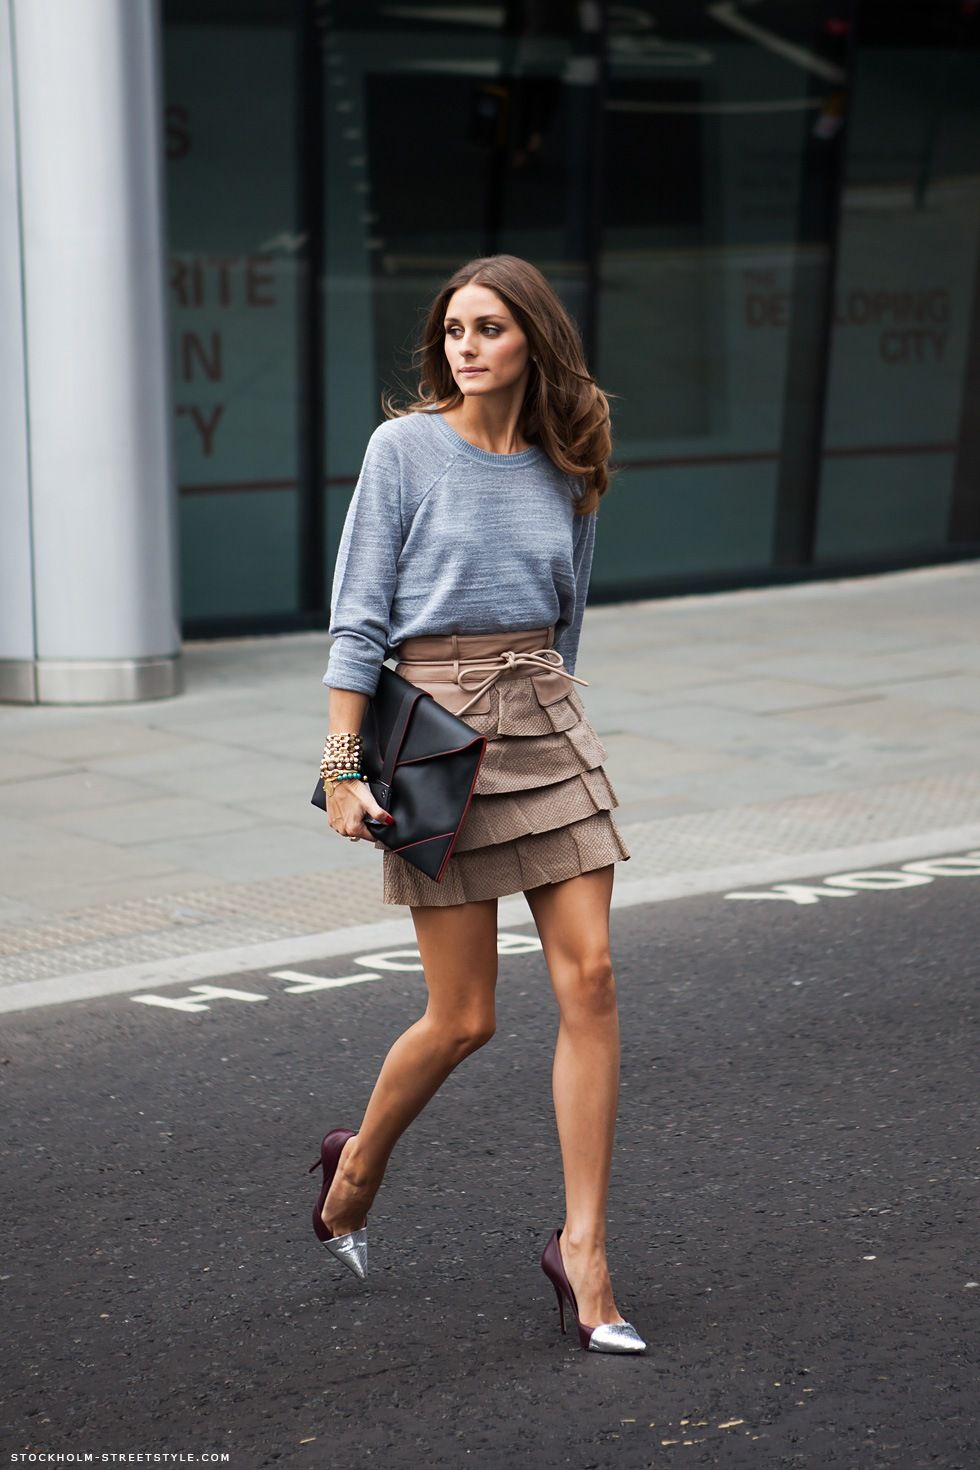 [stockholm streetstyle] olivia palermo // love the skirt!!